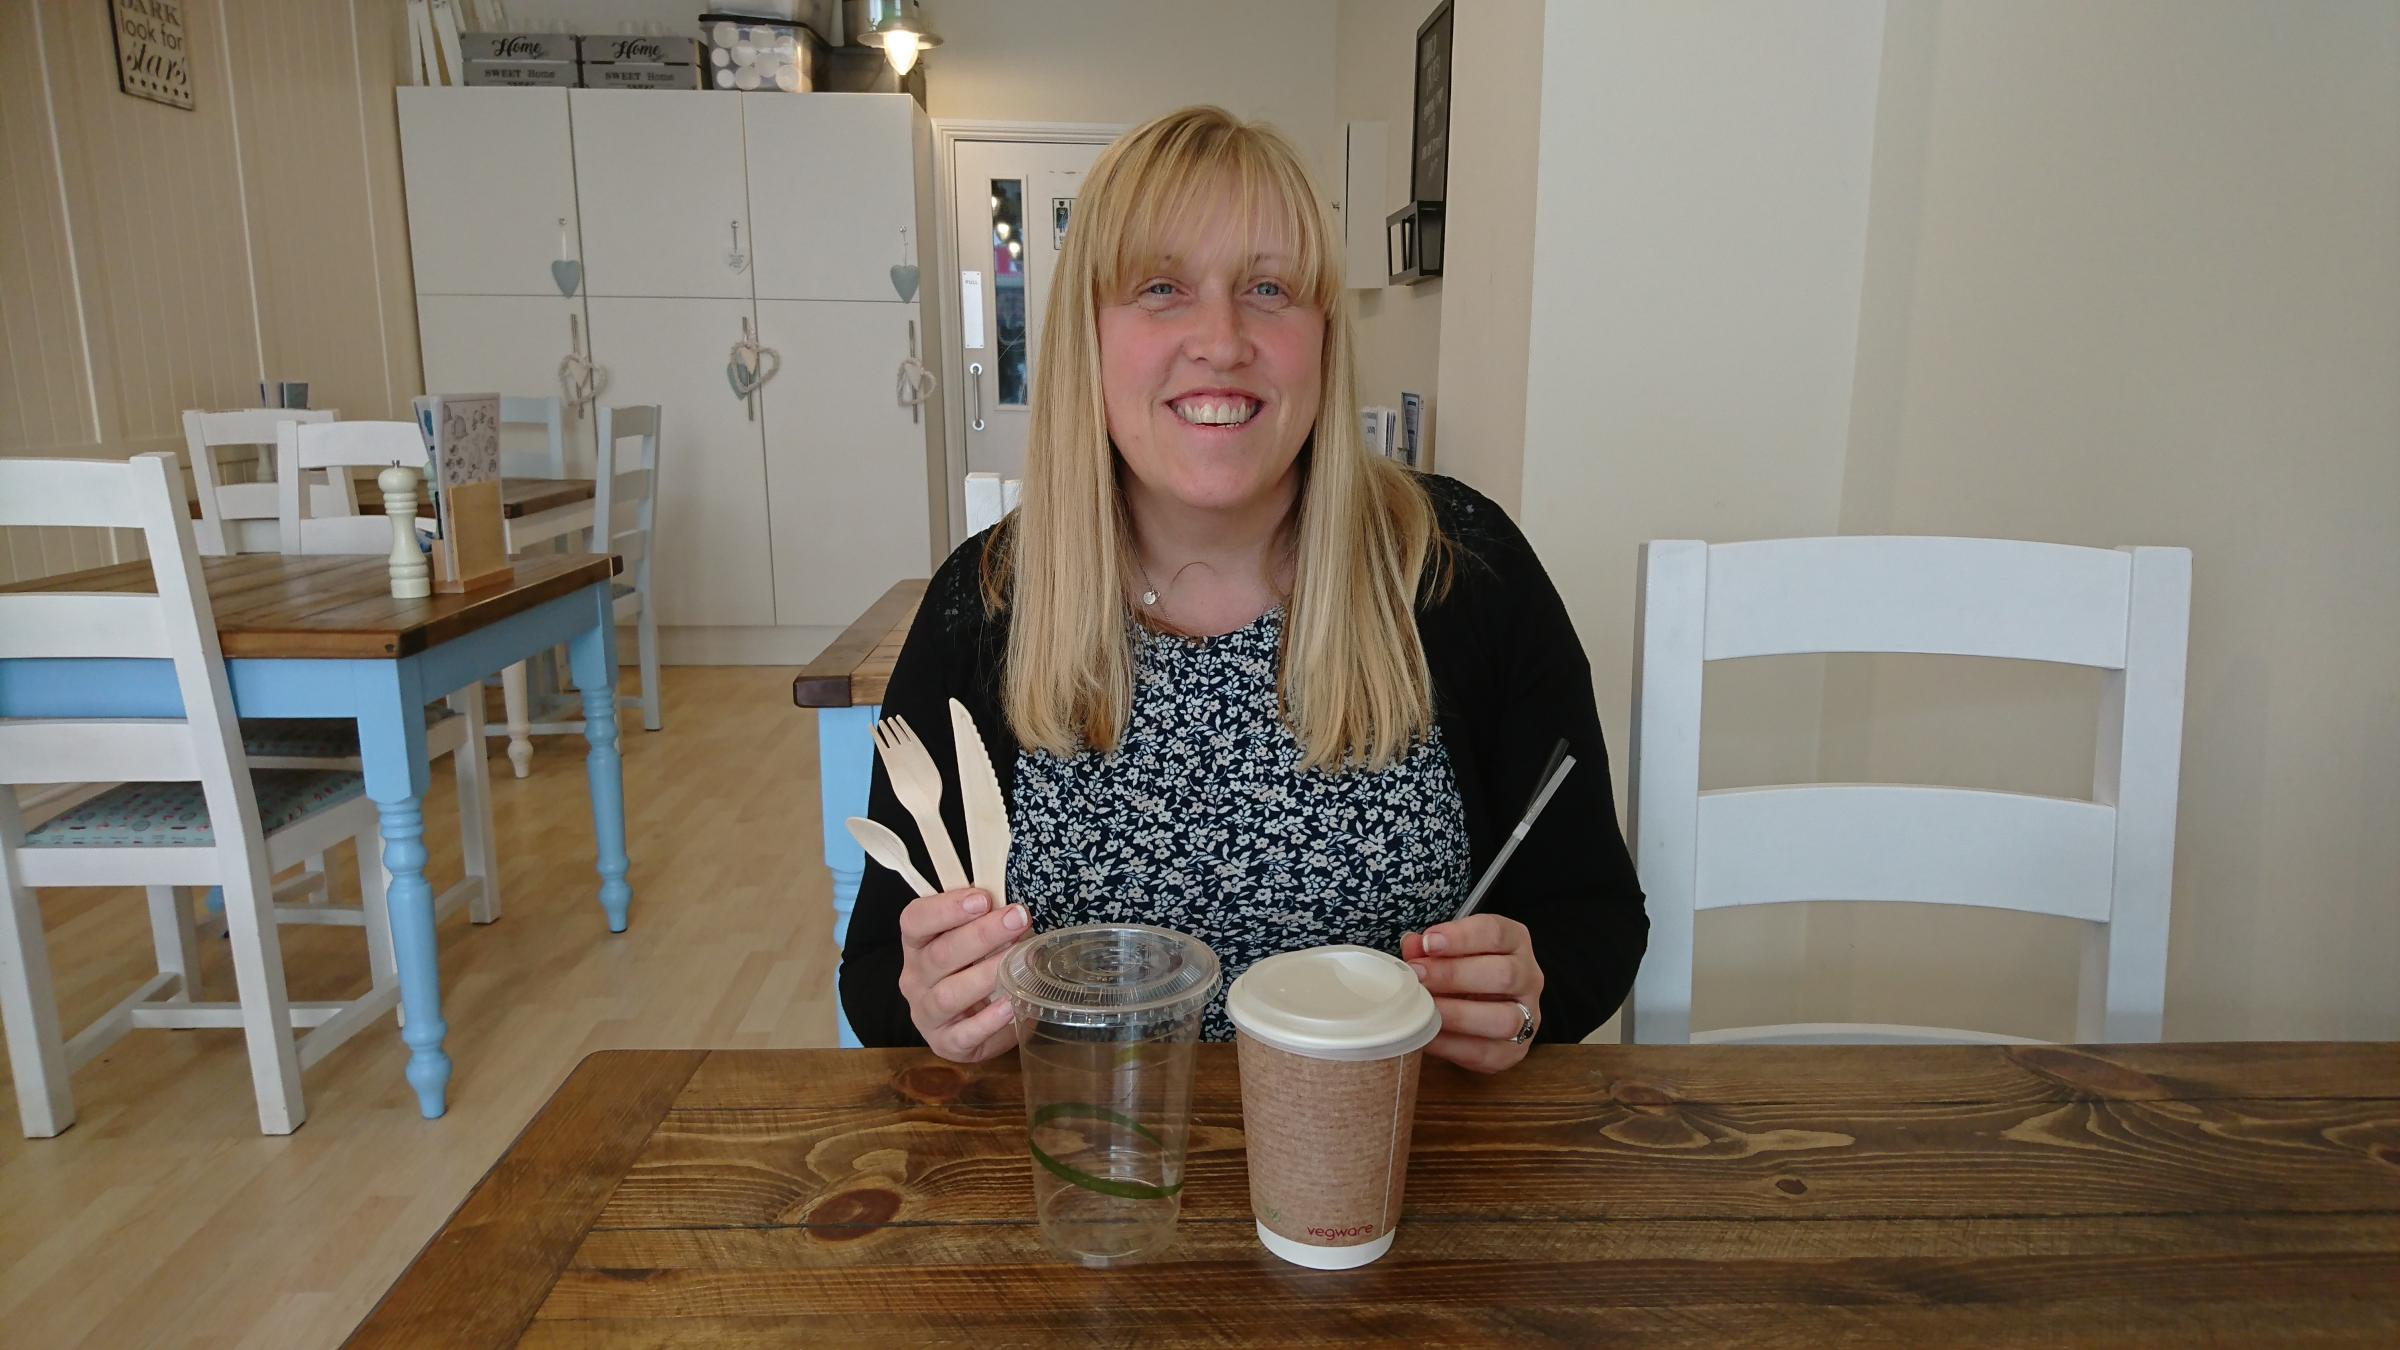 Alison Speirs-Jones with the alternatives to single-use plastics now used at The Crepe Escape cafes in Penarth and Cardiff